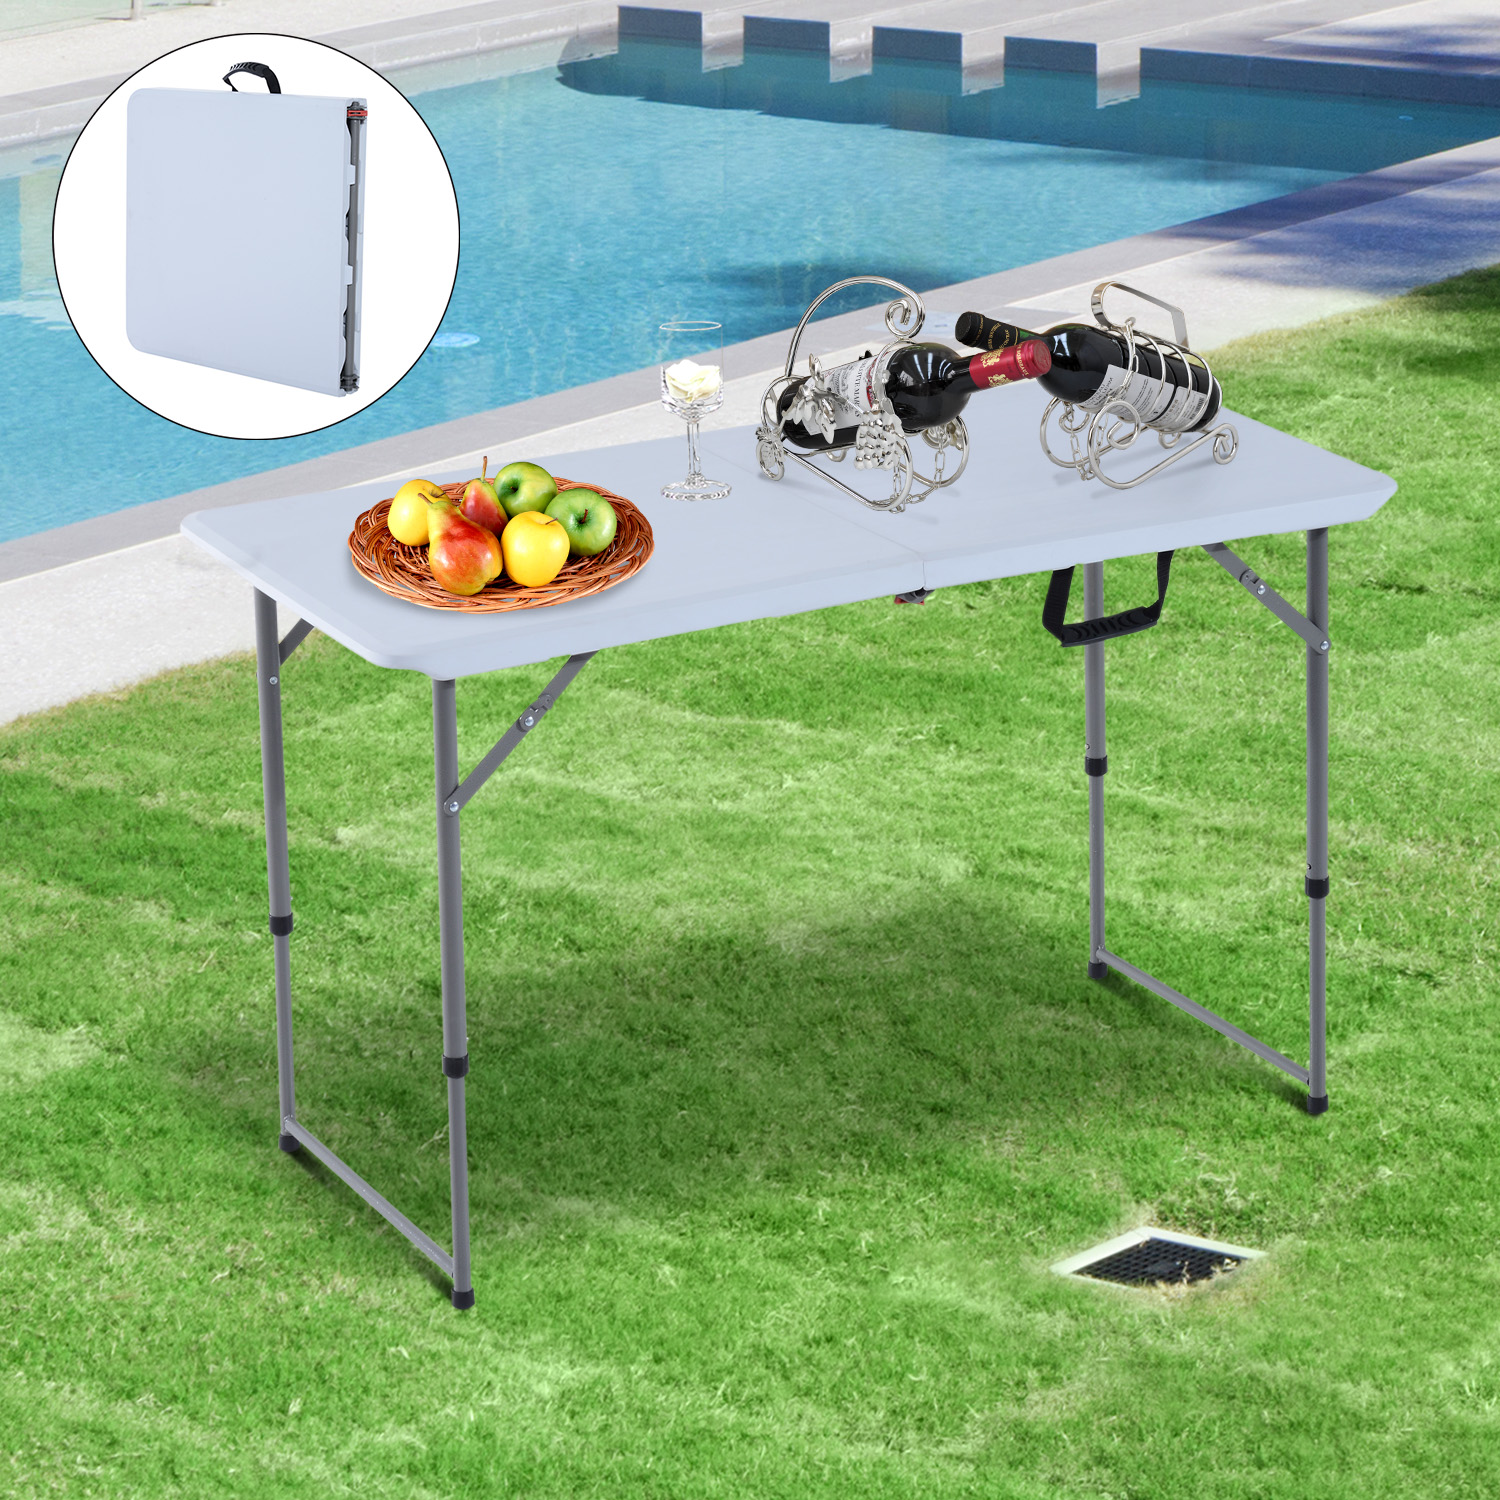 "Image of CAD $58.99 Outsunny Folding Camping 47.2"" Picnic BBQ Party Table Outdoor Garden Adjustable / with Leg (4 Feet) 47inch w/ Canada 25093577260"